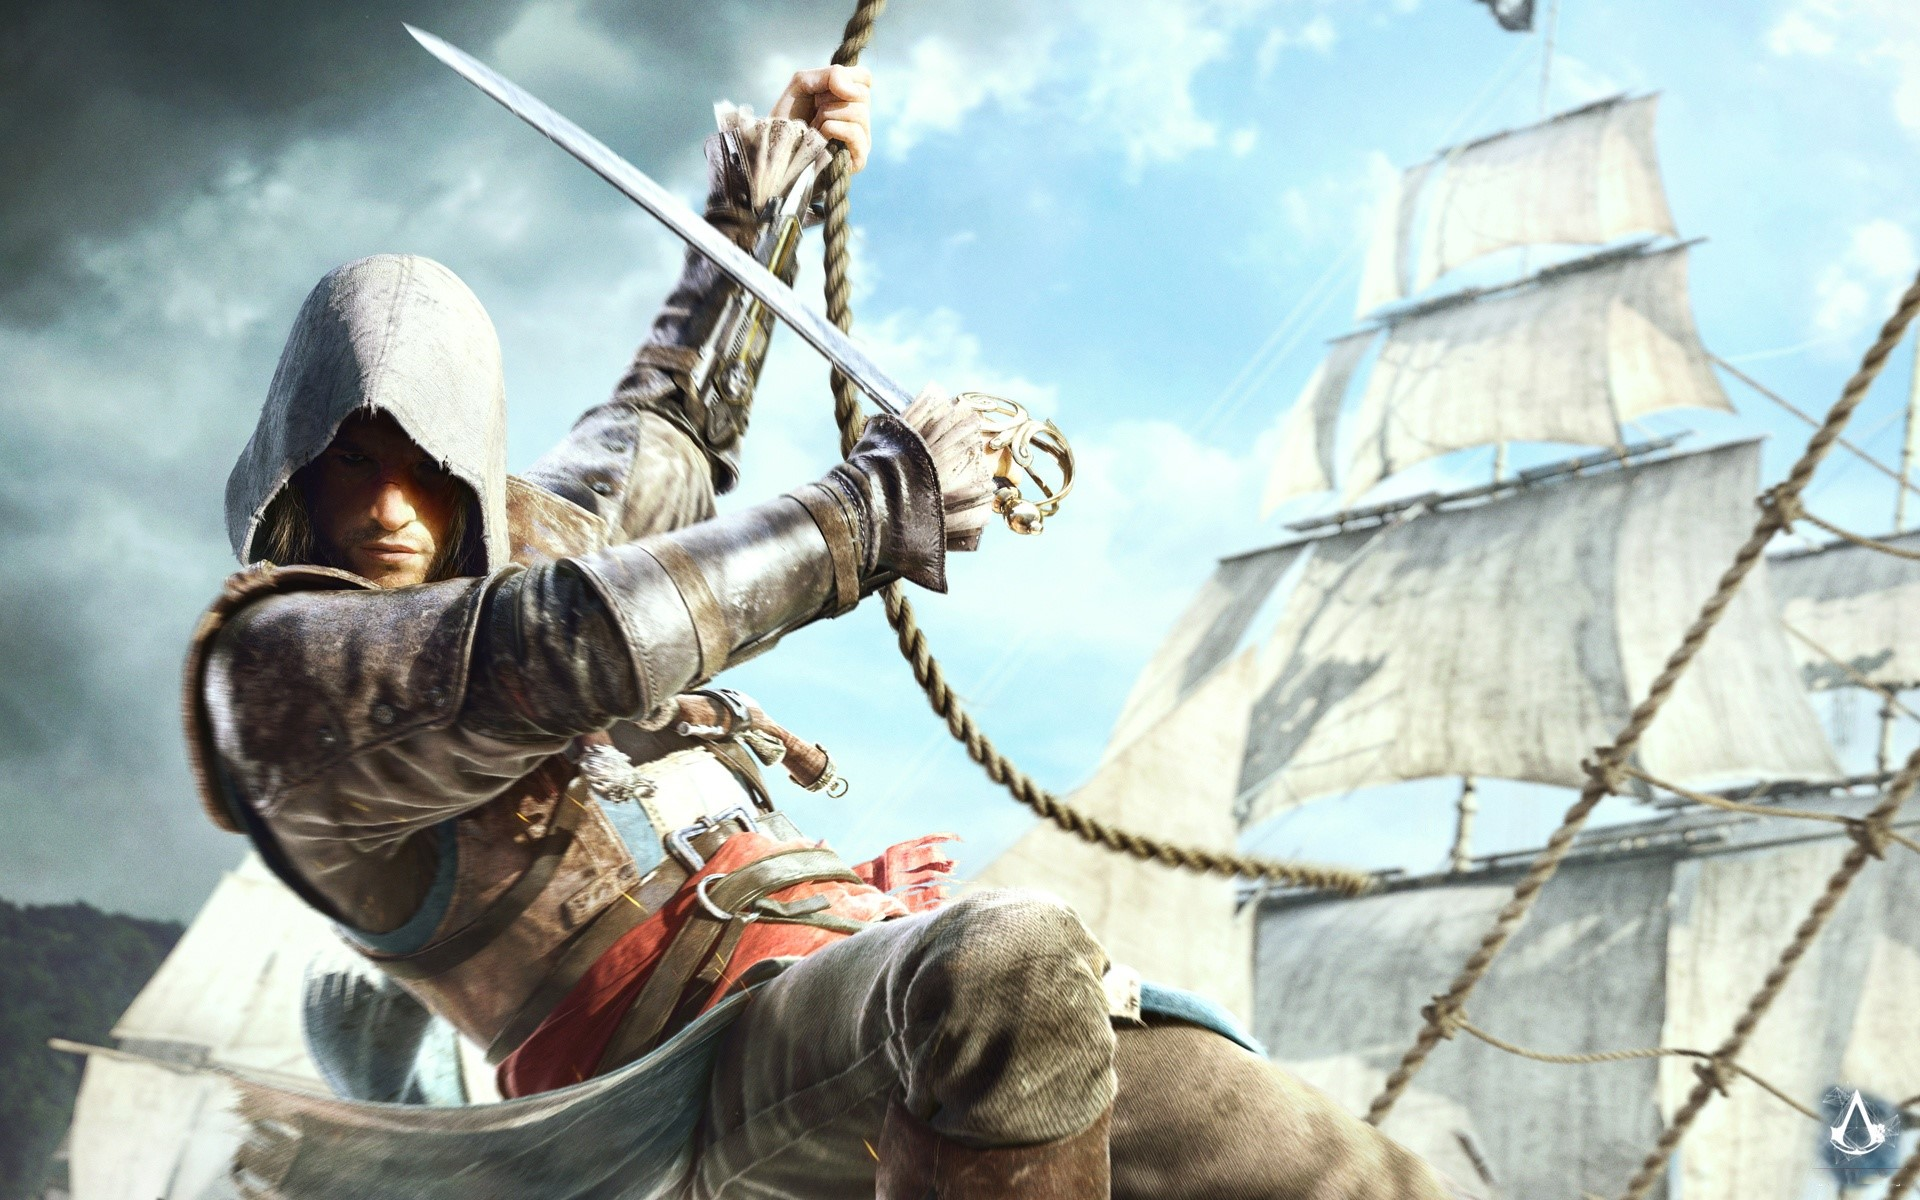 Fondo de pantalla de Assassins Creed IV Imágenes